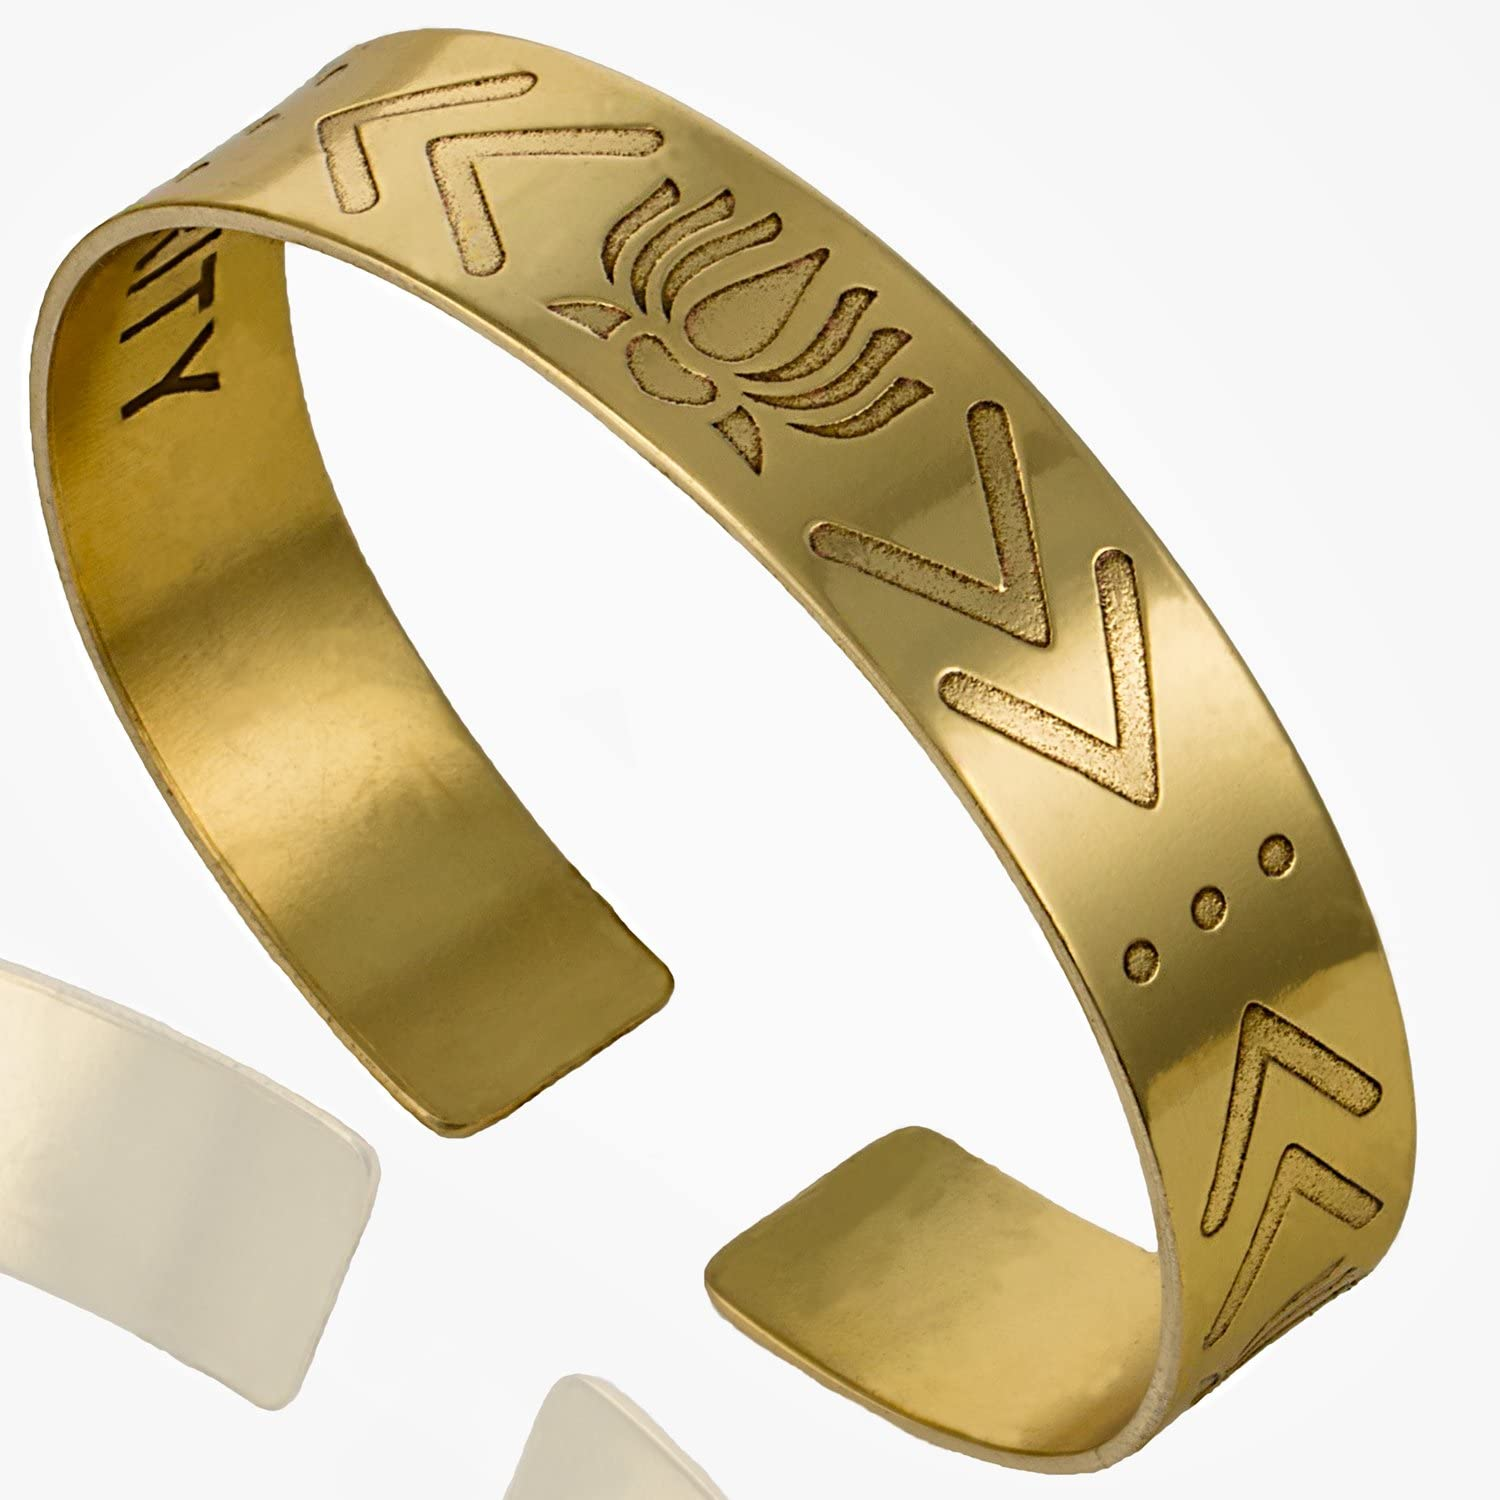 Tribe Azure Fair Trade Lotus Floral Gold Cuff Bracelet Women Beauty Resilience Purity Fashion Meaningful